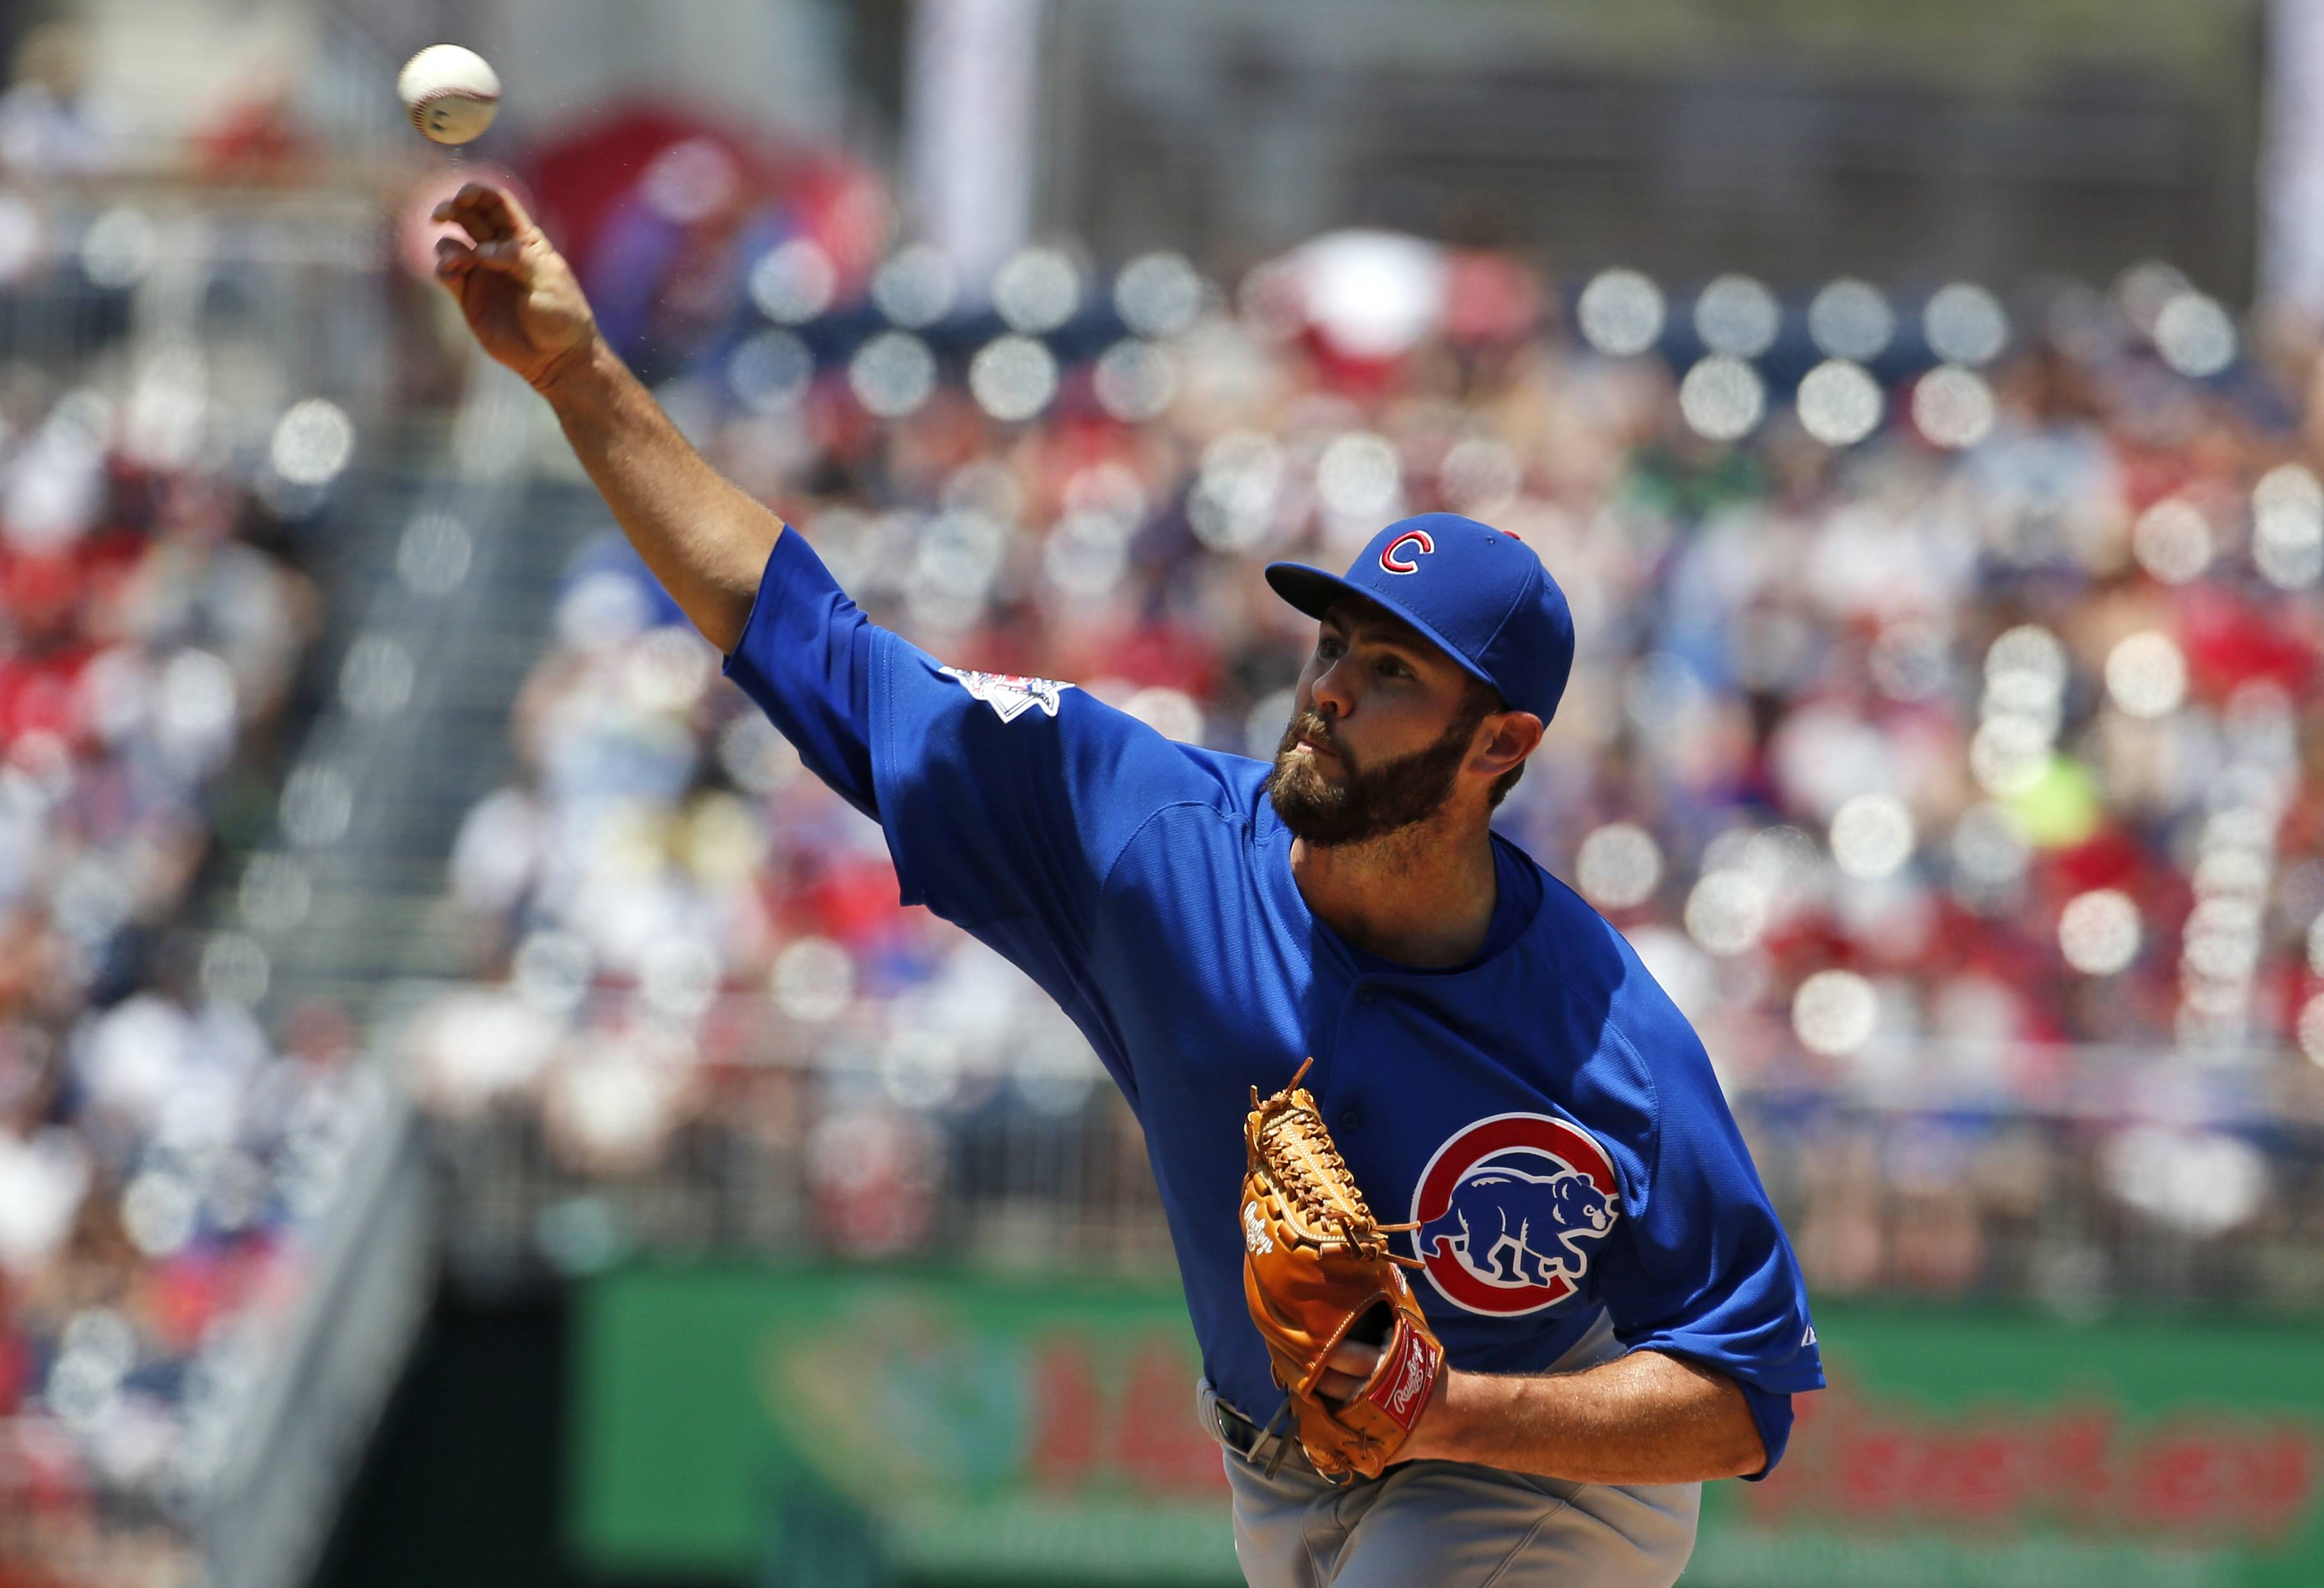 Cubs starting pitcher Jake Arrieta has been flirting with no-hitters and appears to be throwing with a lot of confidence. Like Vince Scully, broadcaster Len Kasper believes he's not doing his job if he doesn't alert baseball fans of a no-hitter in progress.